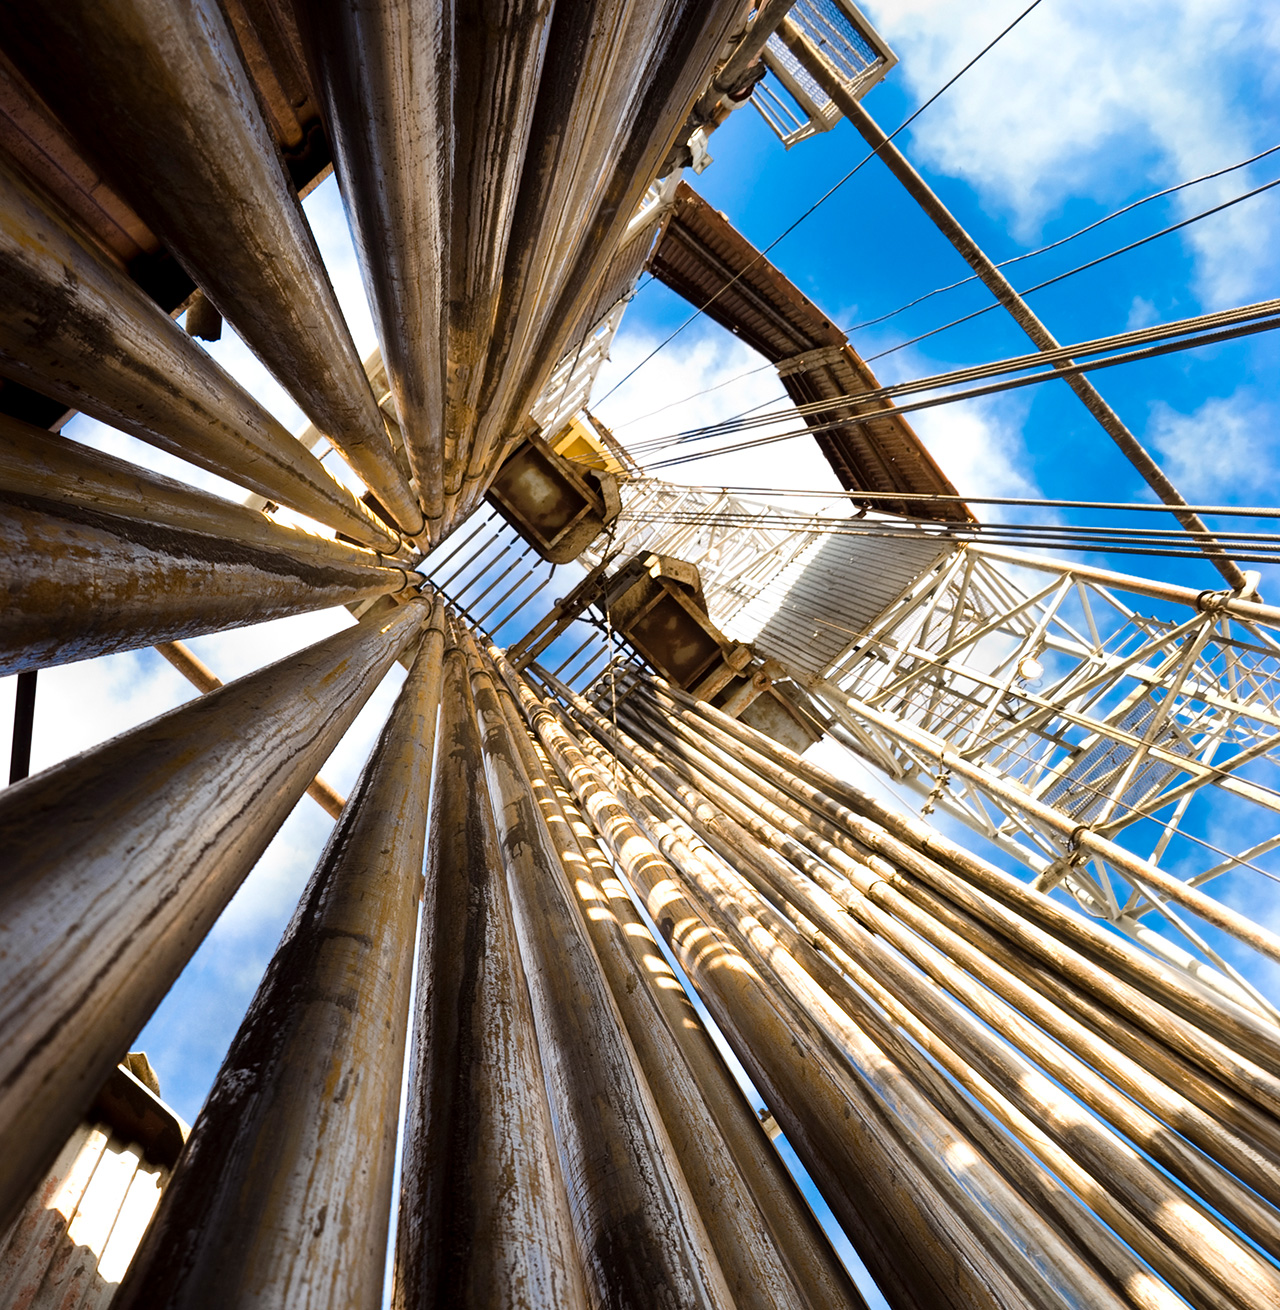 Looking up an oil rig